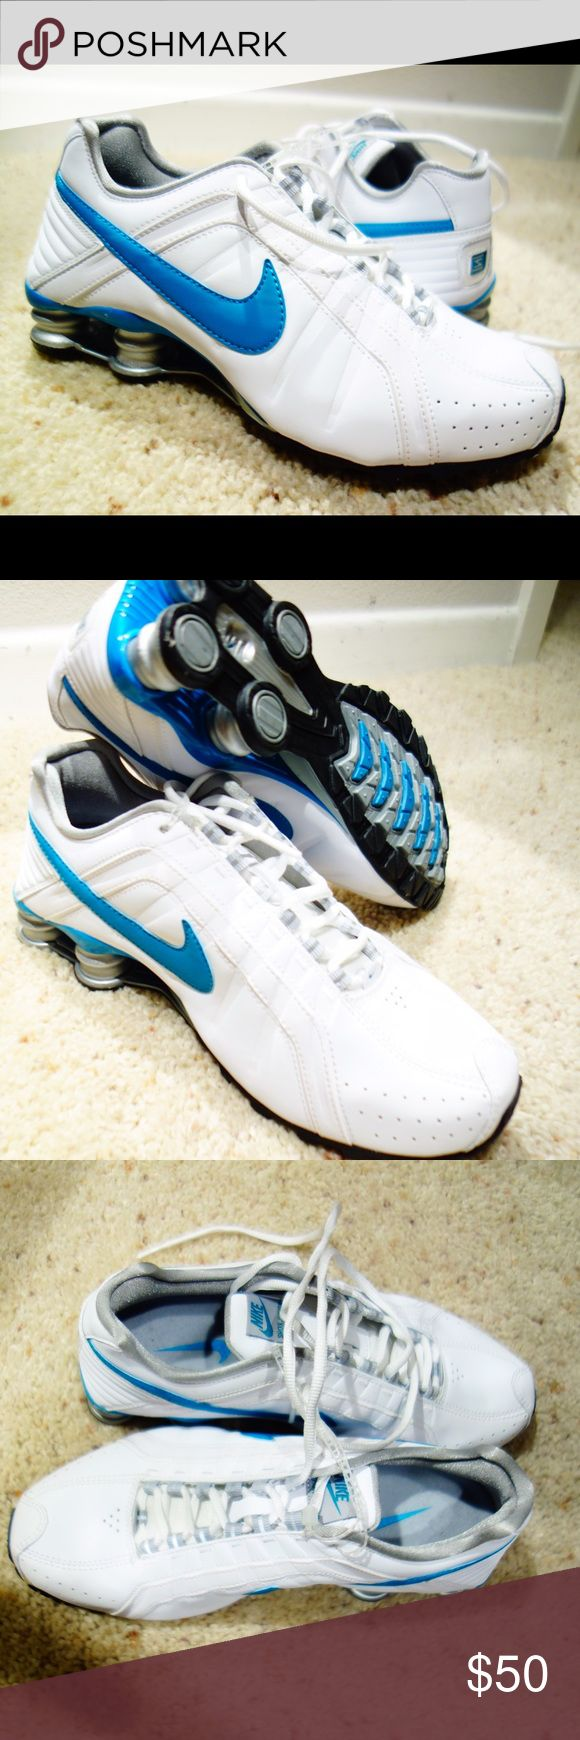 Brand new Nike Shox Junior women Sz7.5 white/teal Brand new, never worn Nike Shox Junior comfort running shoe - Women's Sz 7.5.  Great shoes, shox helps with running. Selling because I bought 2 pairs and lost the receipt. Nike Shoes Athletic Shoes